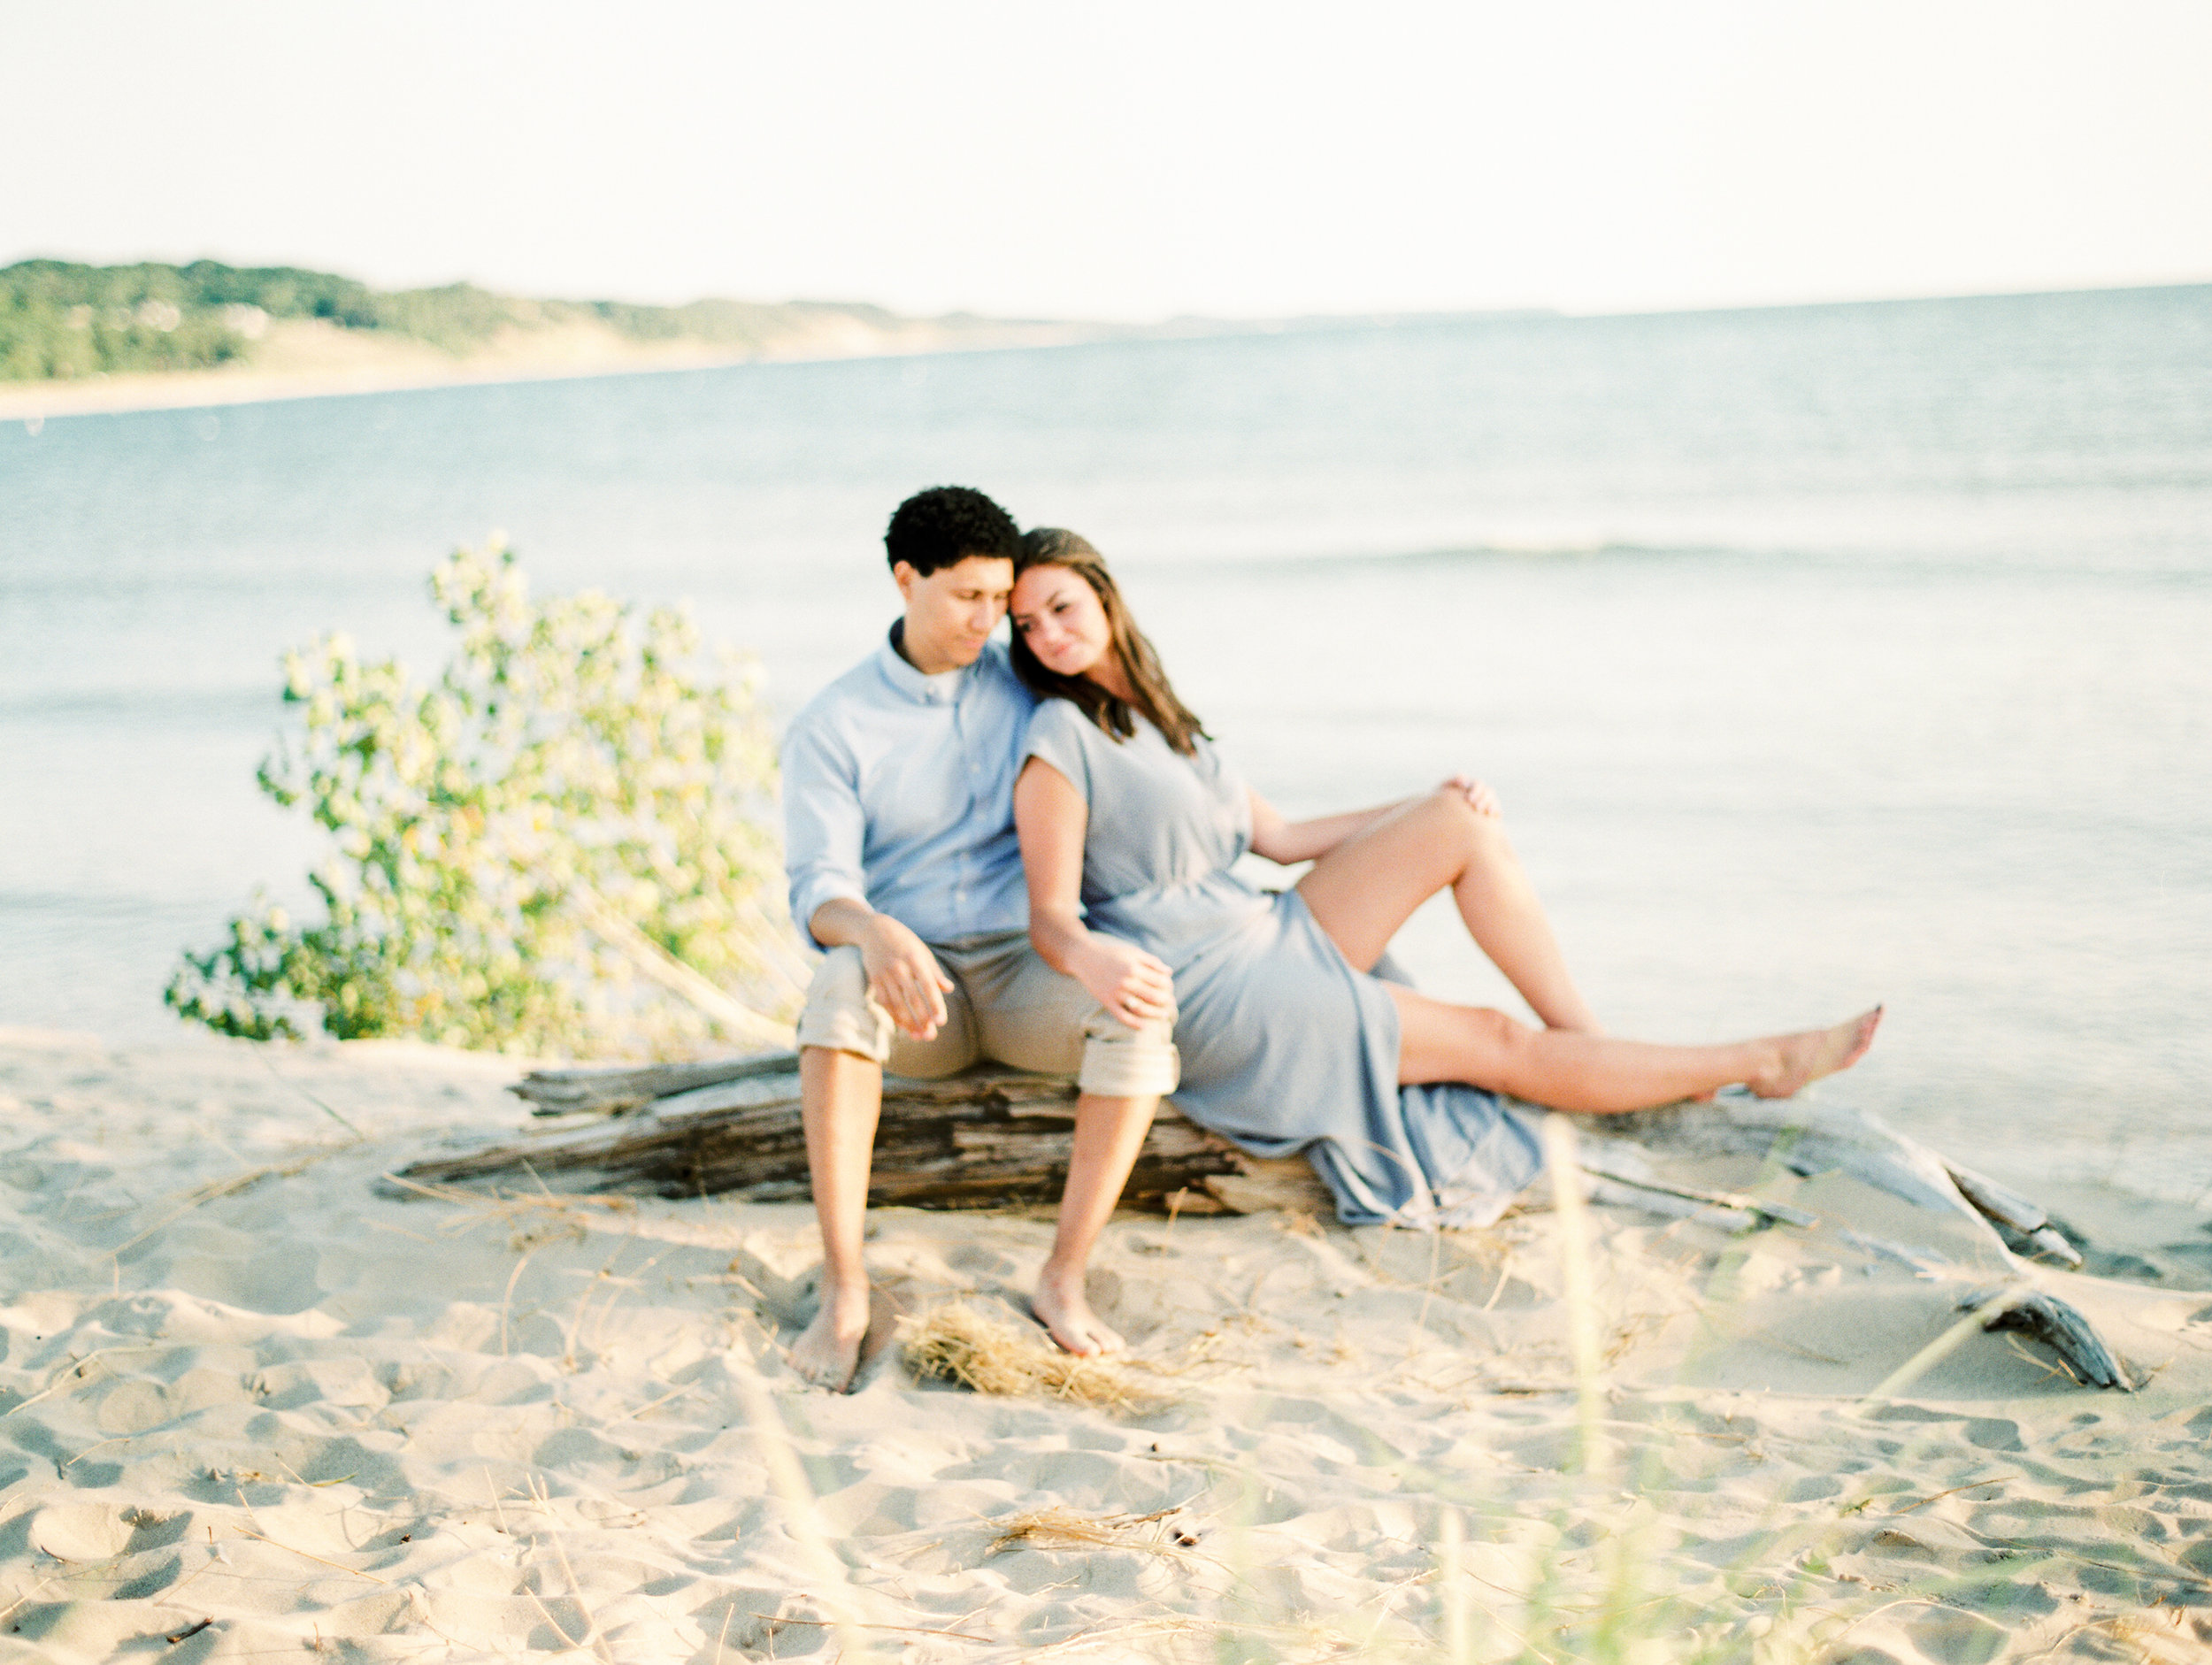 Lucie+Anthony+Engaged-43.jpg